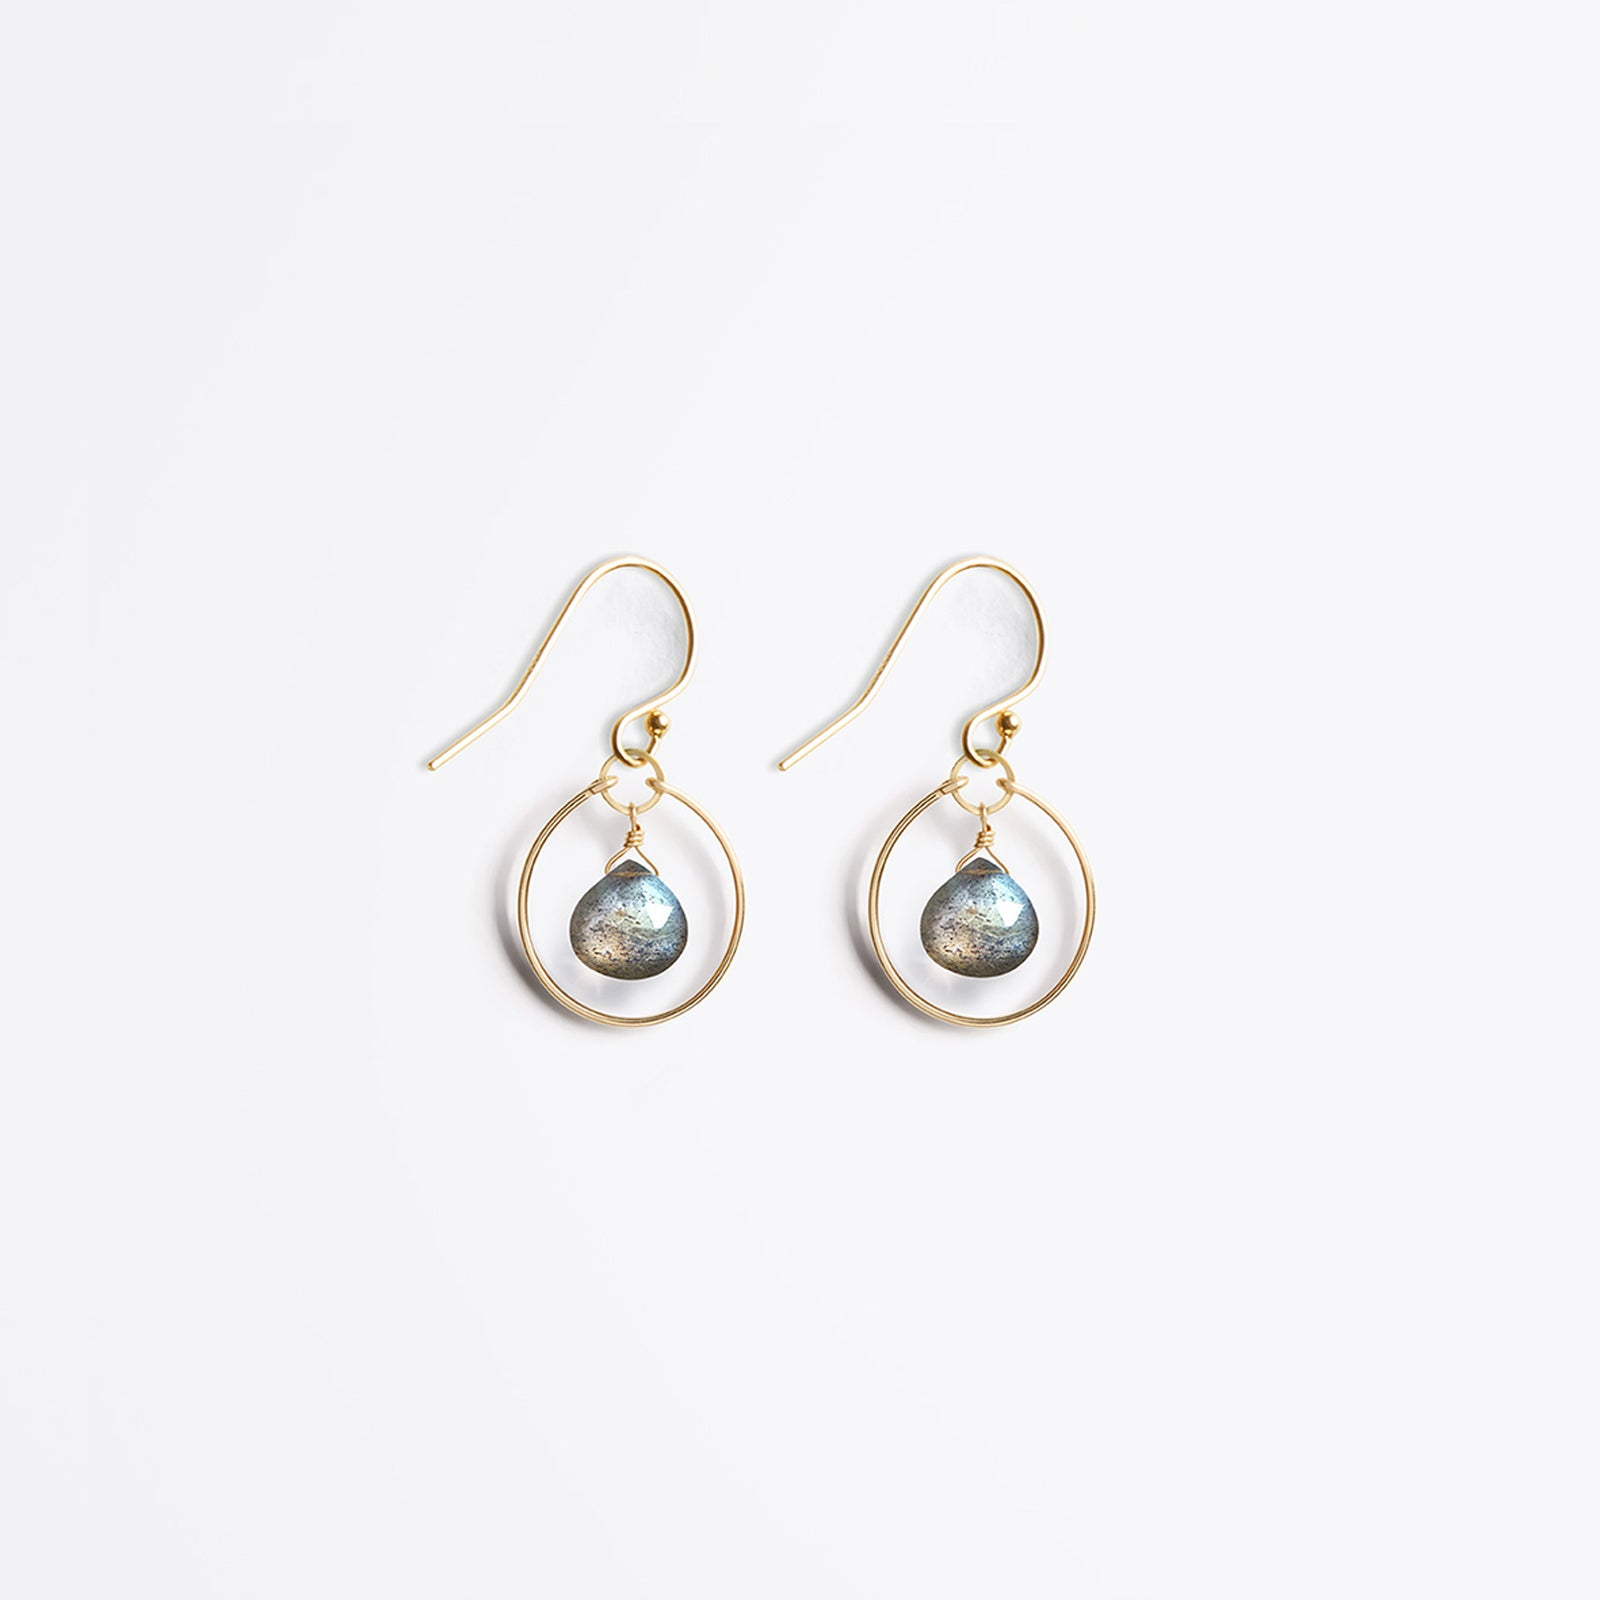 Wanderlust Life Ethically Handmade jewellery made in the UK. Minimalist gold and fine cord jewellery. petite stella orb earring, iridescent labradorite